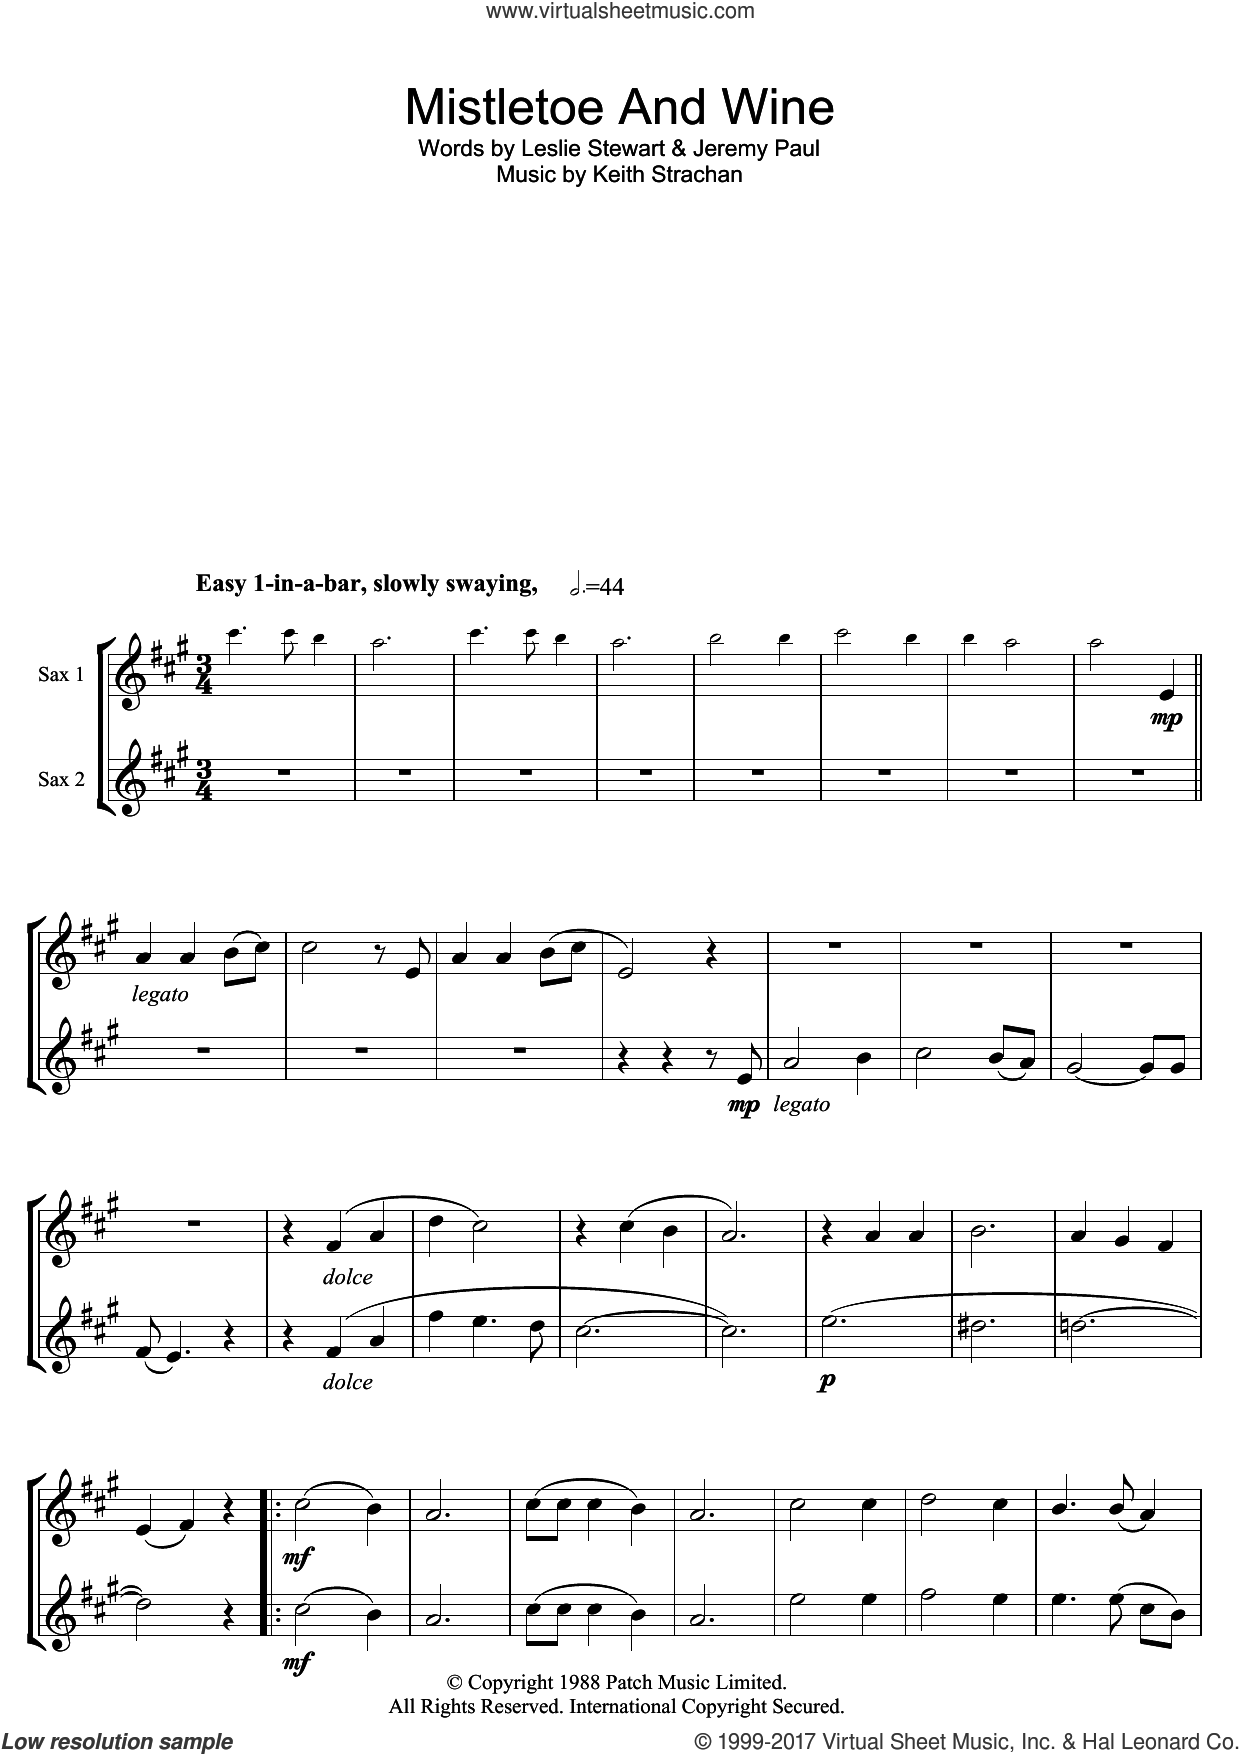 Mistletoe And Wine sheet music for tenor saxophone solo by Cliff Richard, Jeremy Paul, Keith Strachan and Leslie Stewart, intermediate. Score Image Preview.